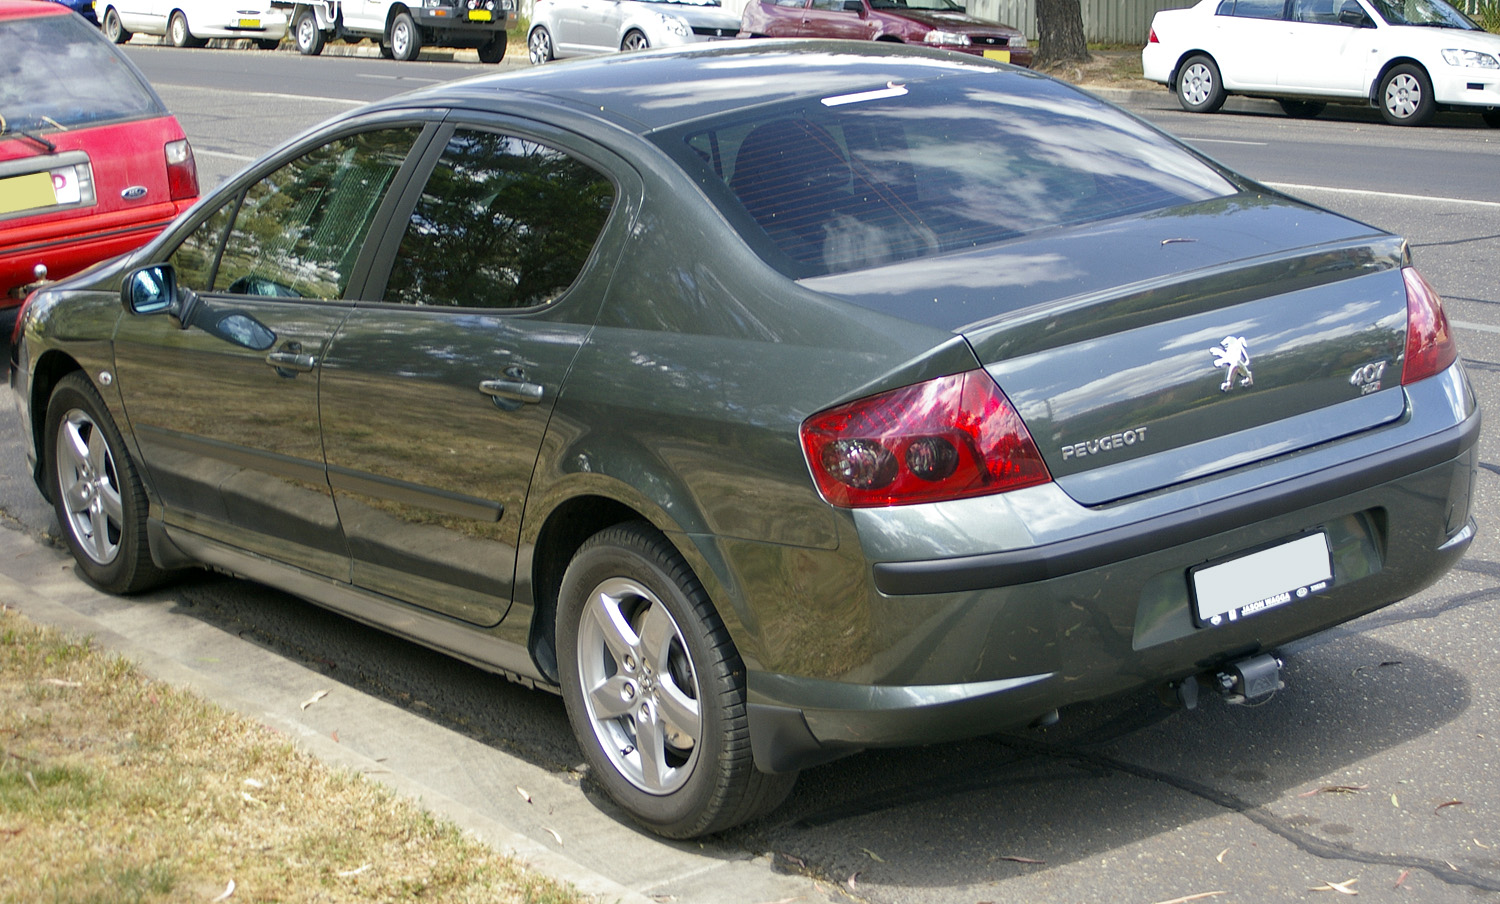 File Peugeot 407 Hdi Rear View Jpg Wikimedia Commons